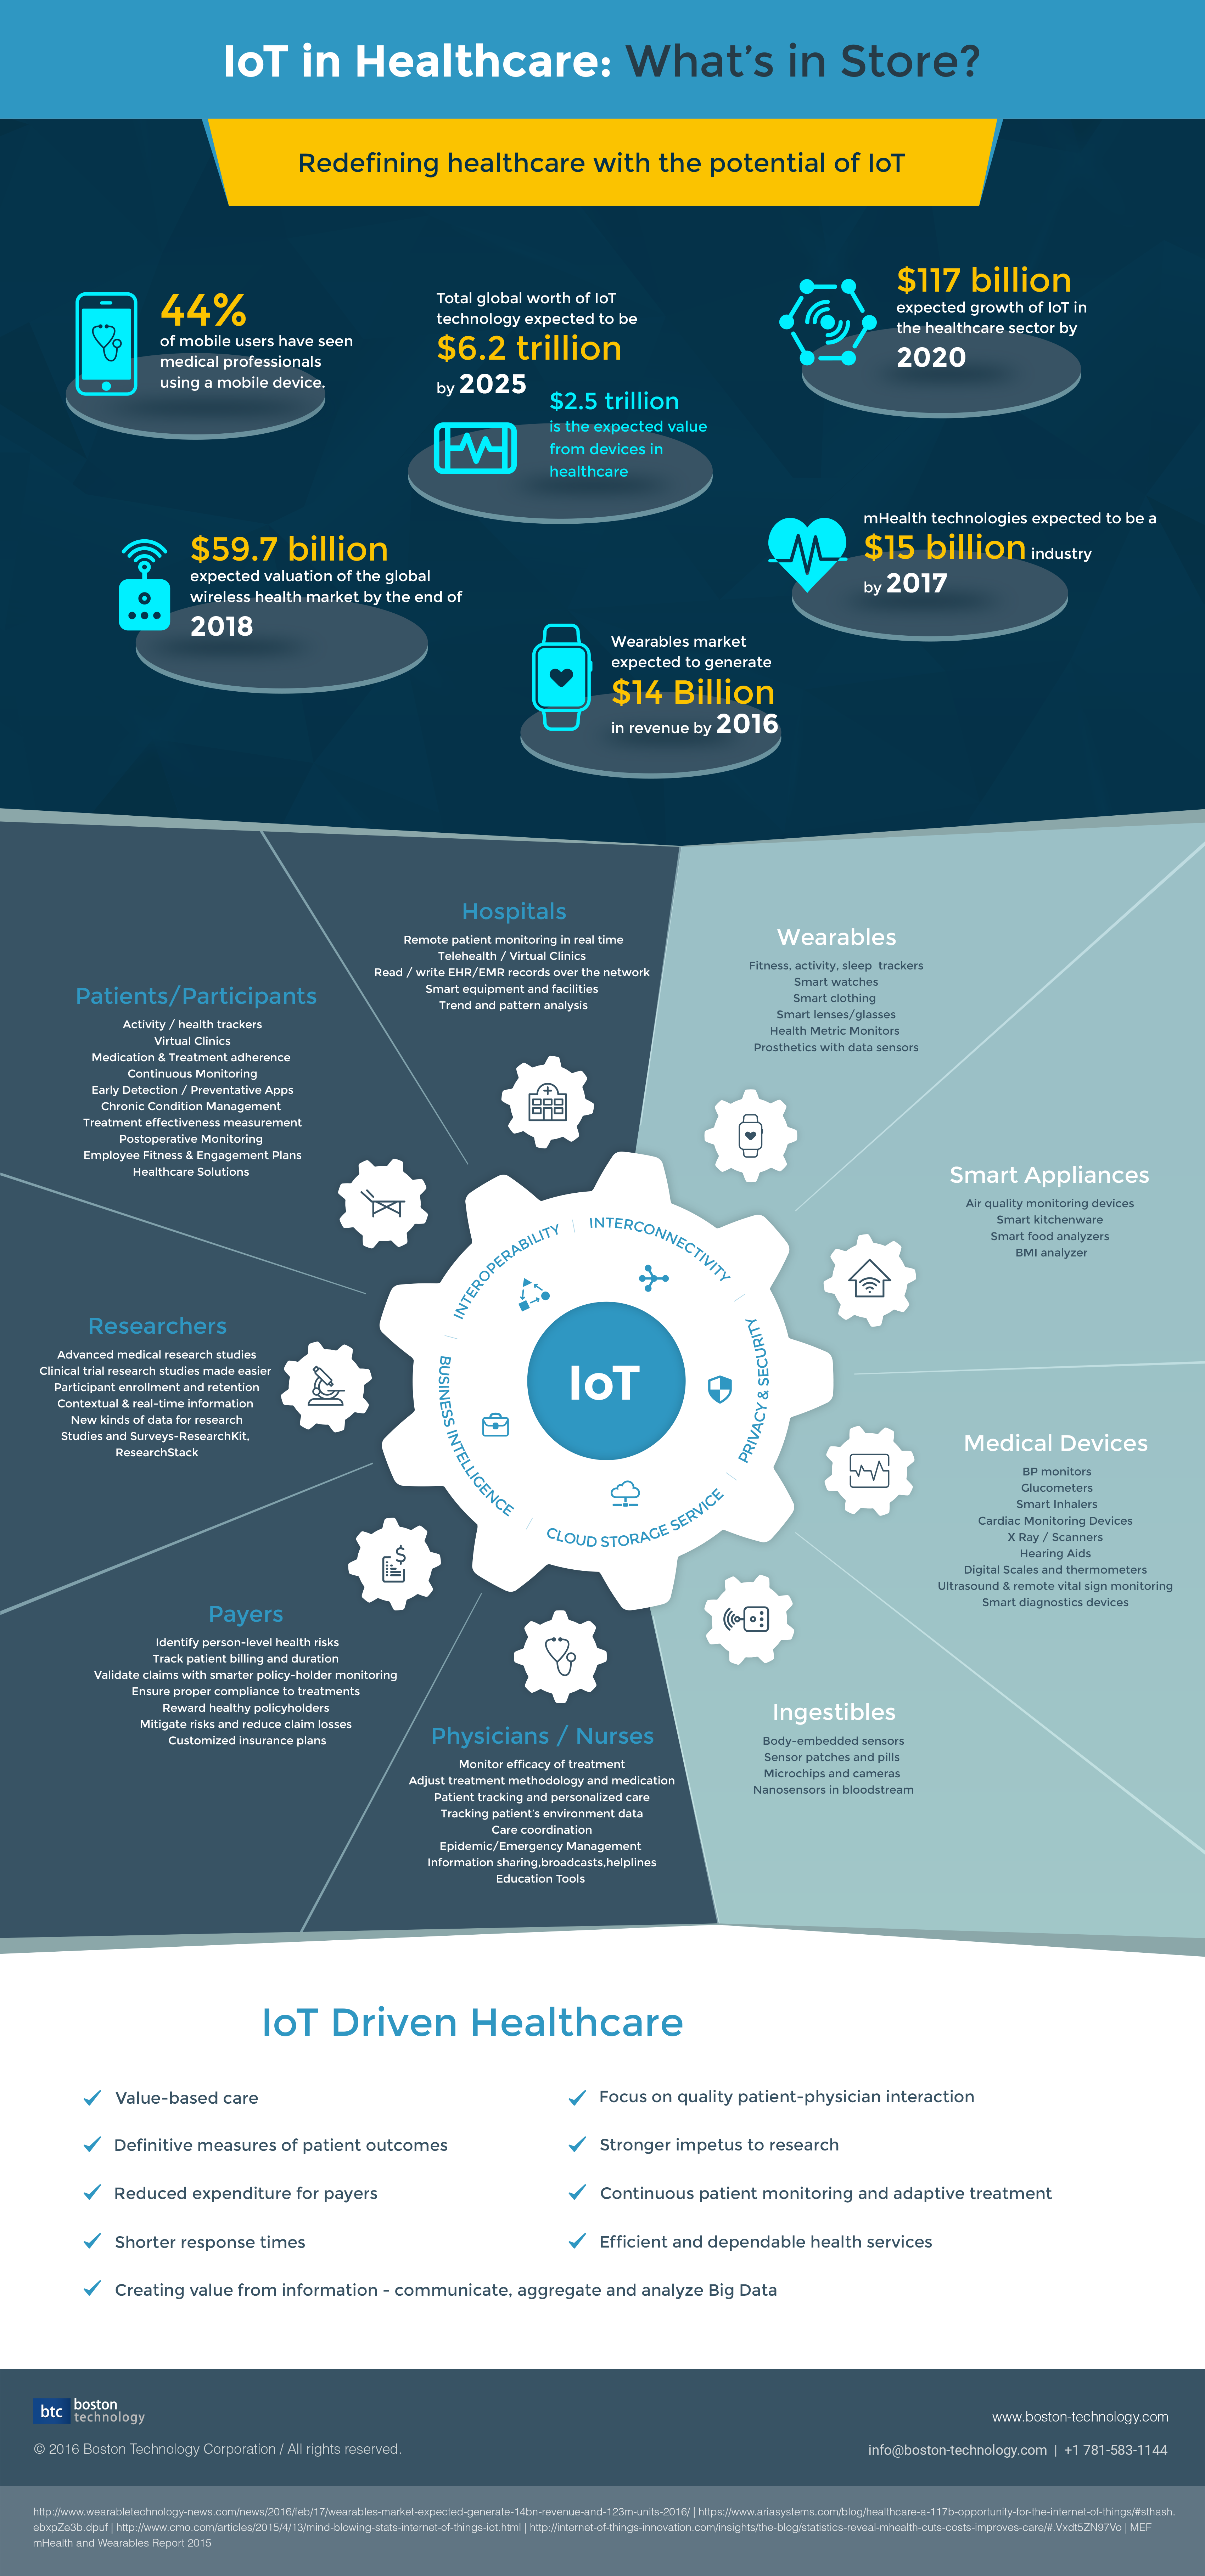 IoT in Healthcare Trends | New Visions Healthcare Blog